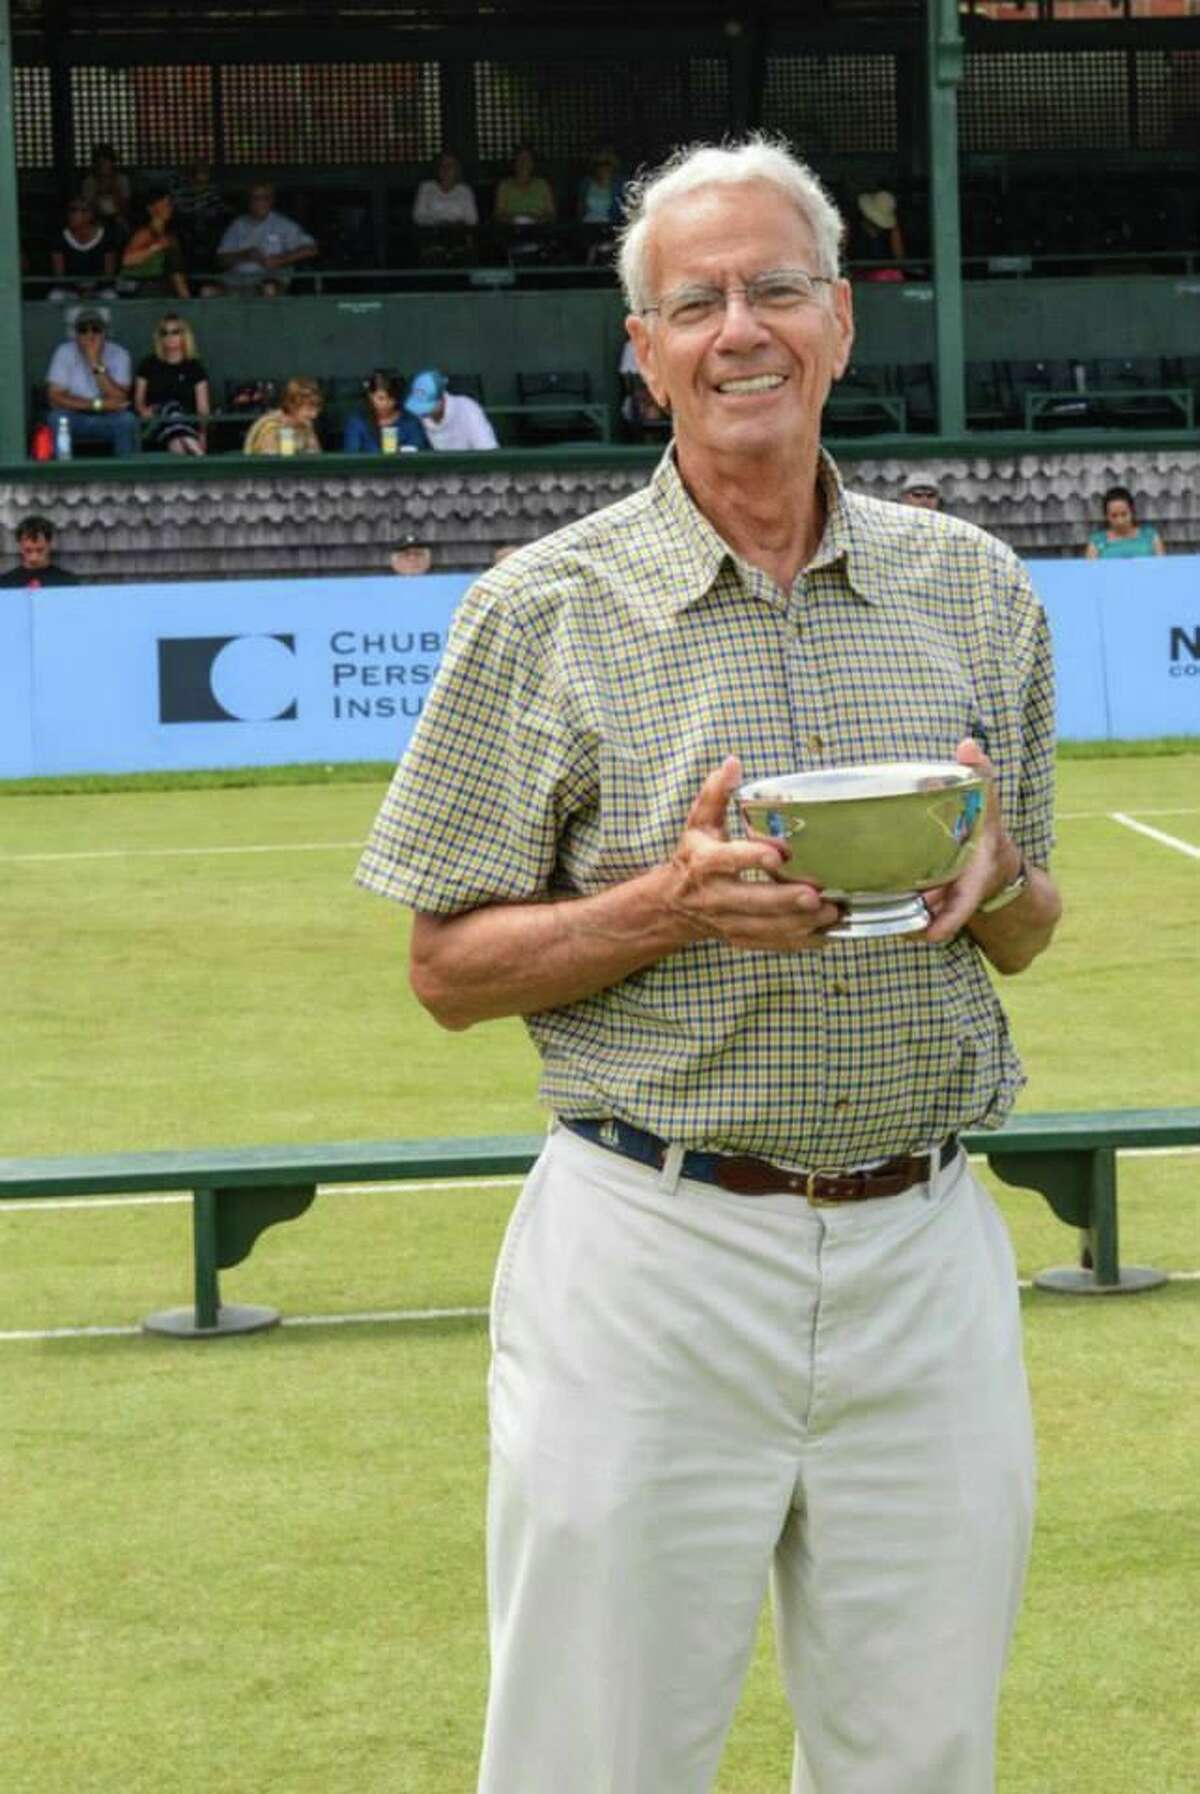 Goldblatt earned the Ned Weld Award in 2019. The award was presented by the Youth Tennis Foundation of New England, an affiliate of the United States Tennis Association, for Goldblatt's work with his organization, Norwalk Grassroots Tennis.